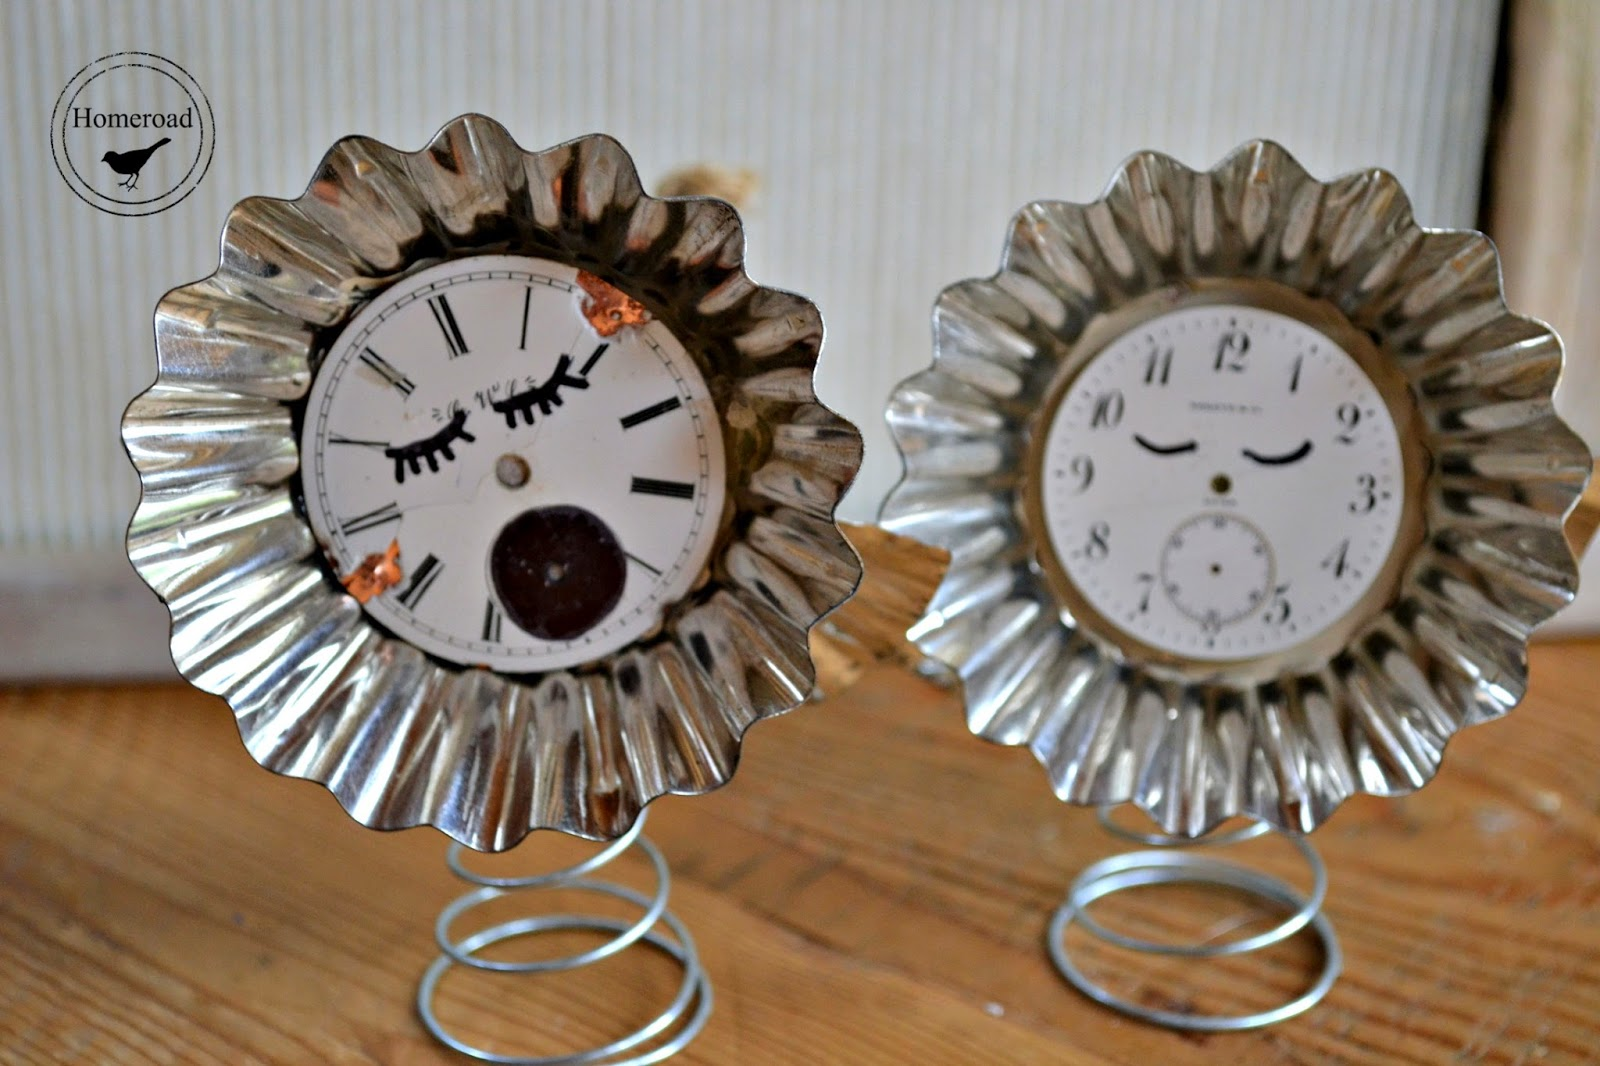 vintage tart tin clock face angel ornaments www.homeroad.net